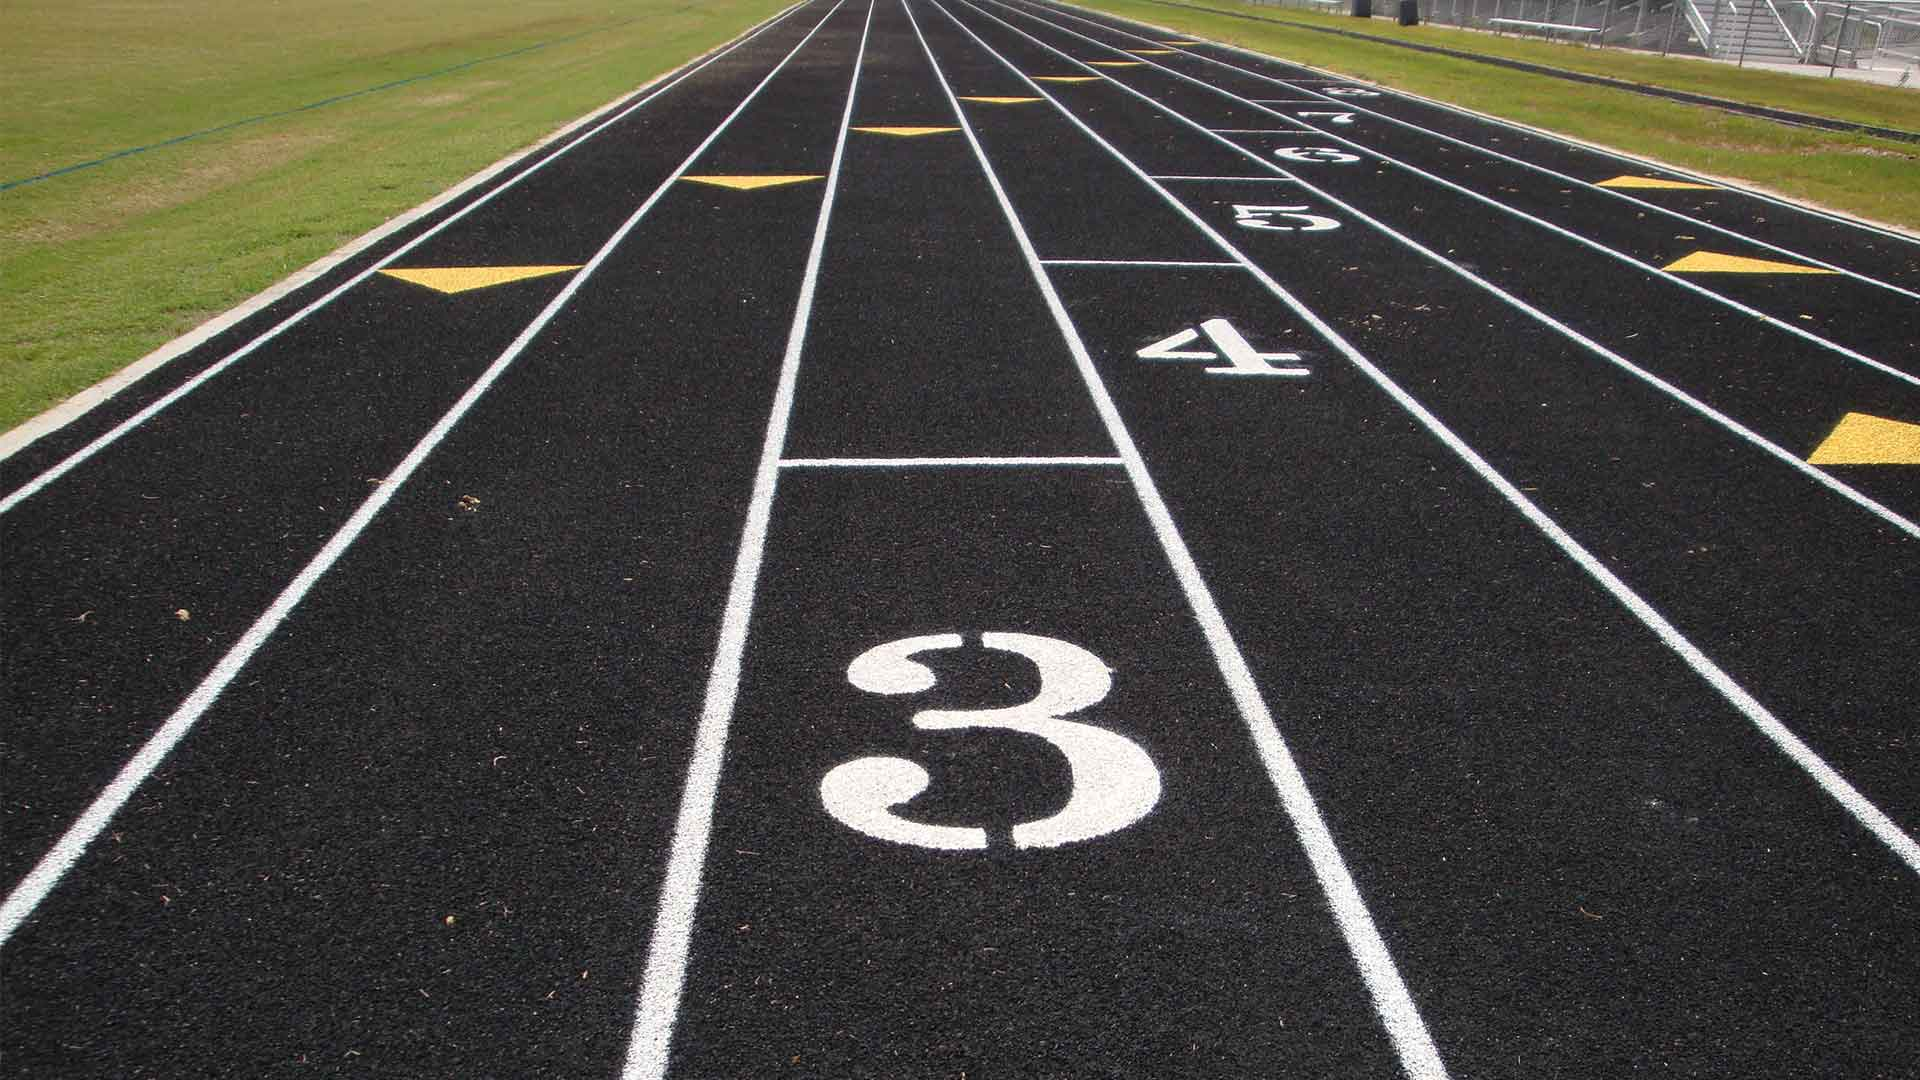 JH Track Results at Lincoln with LaVille